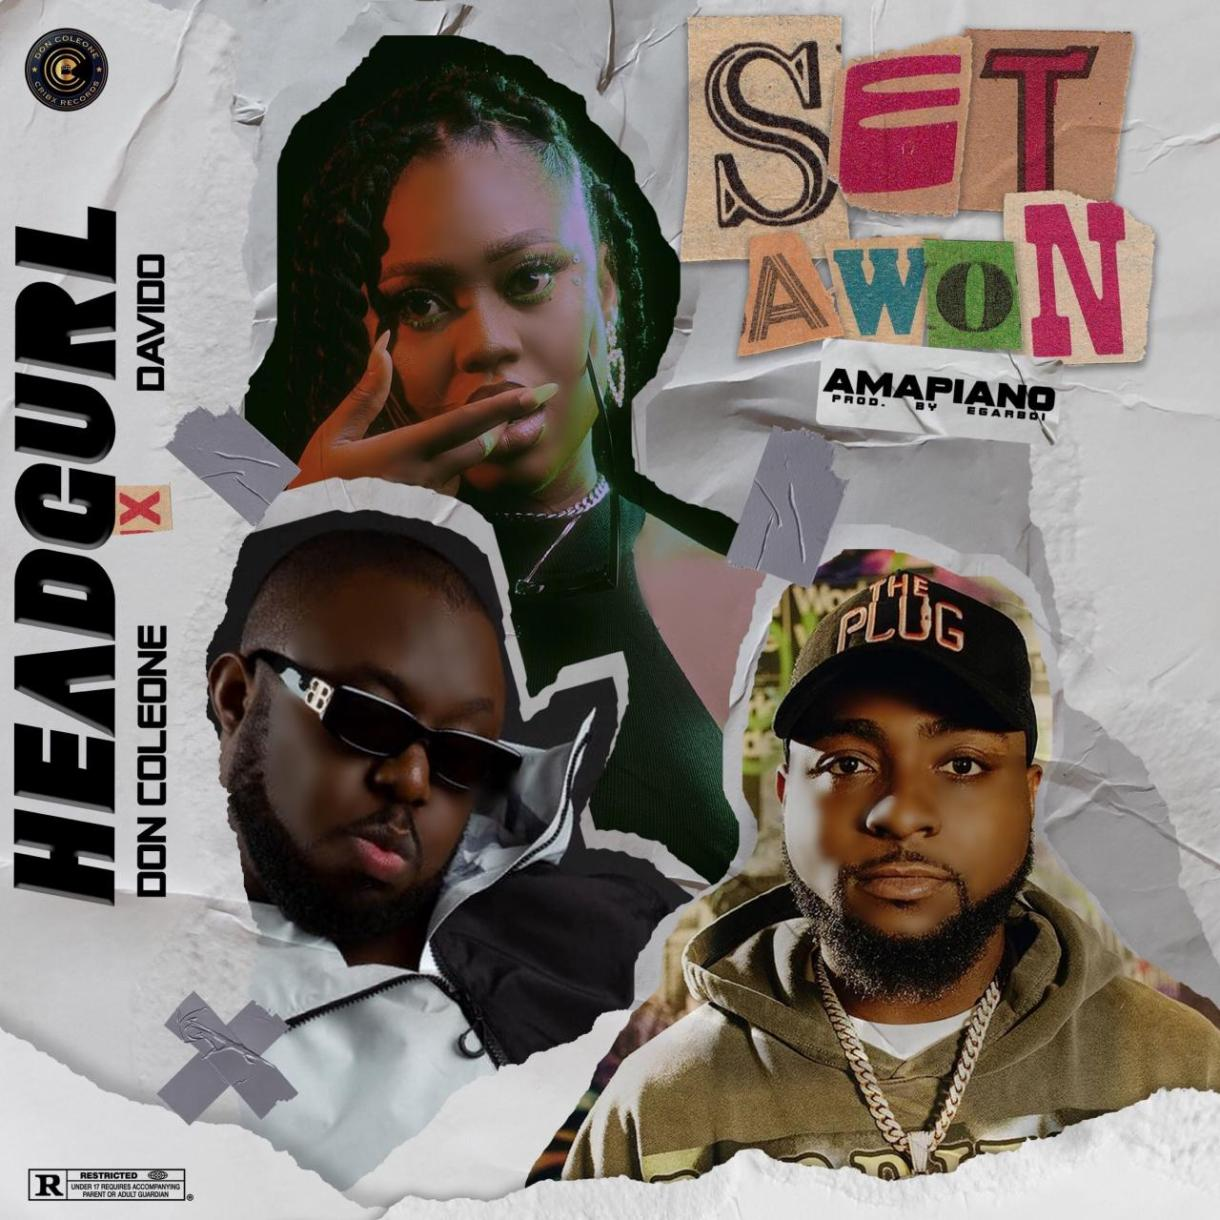 Headgurl Ft. Davido & Don Coleone - Set Awon (Remix)